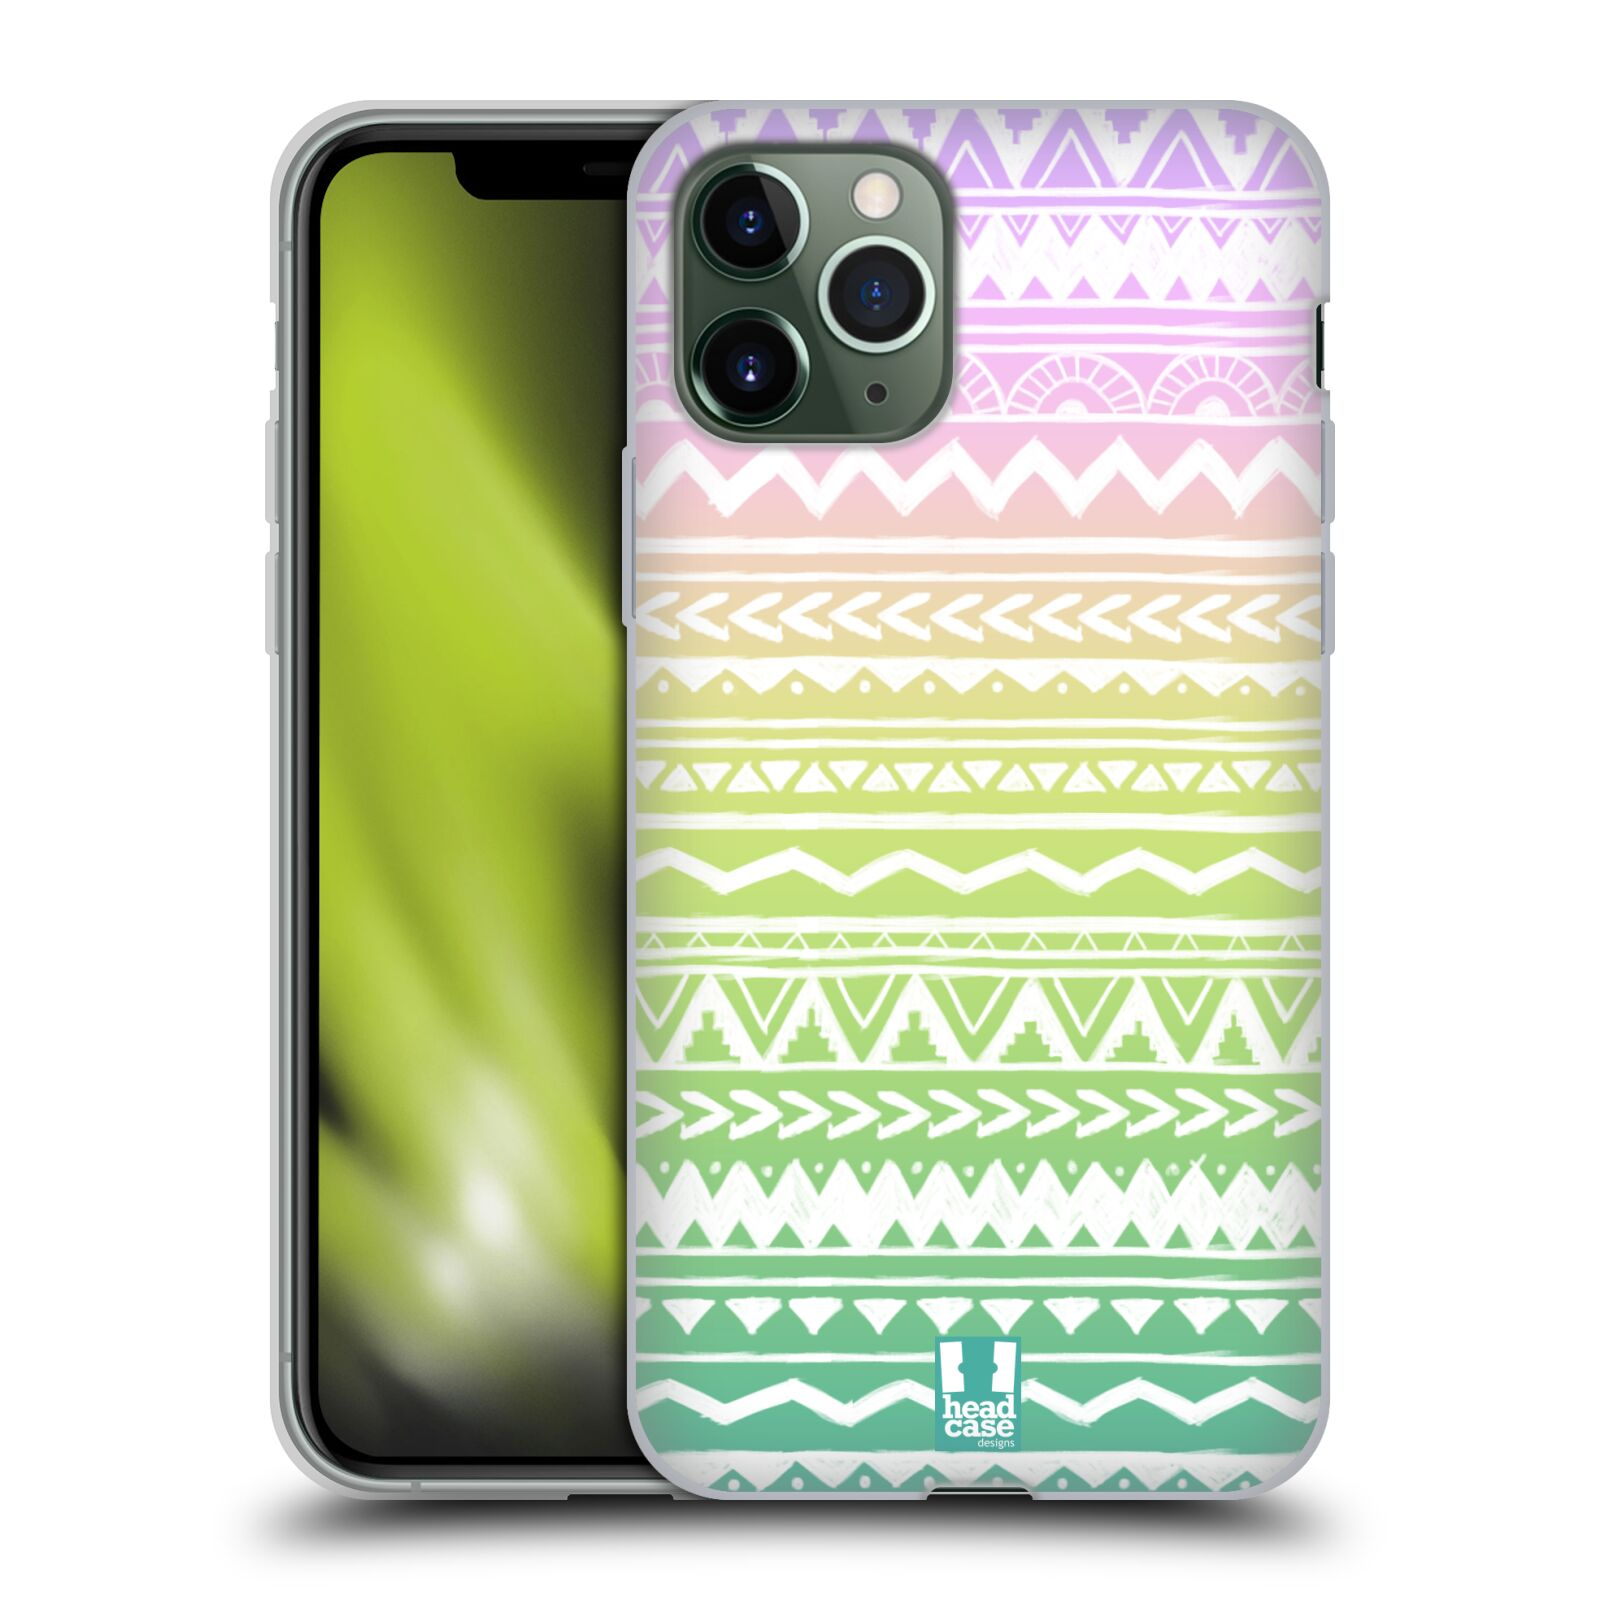 silikonový krytu na iphone 6s plus , Silikonové pouzdro na mobil Apple iPhone 11 Pro - Head Case - MIX AZTEC DRAWN